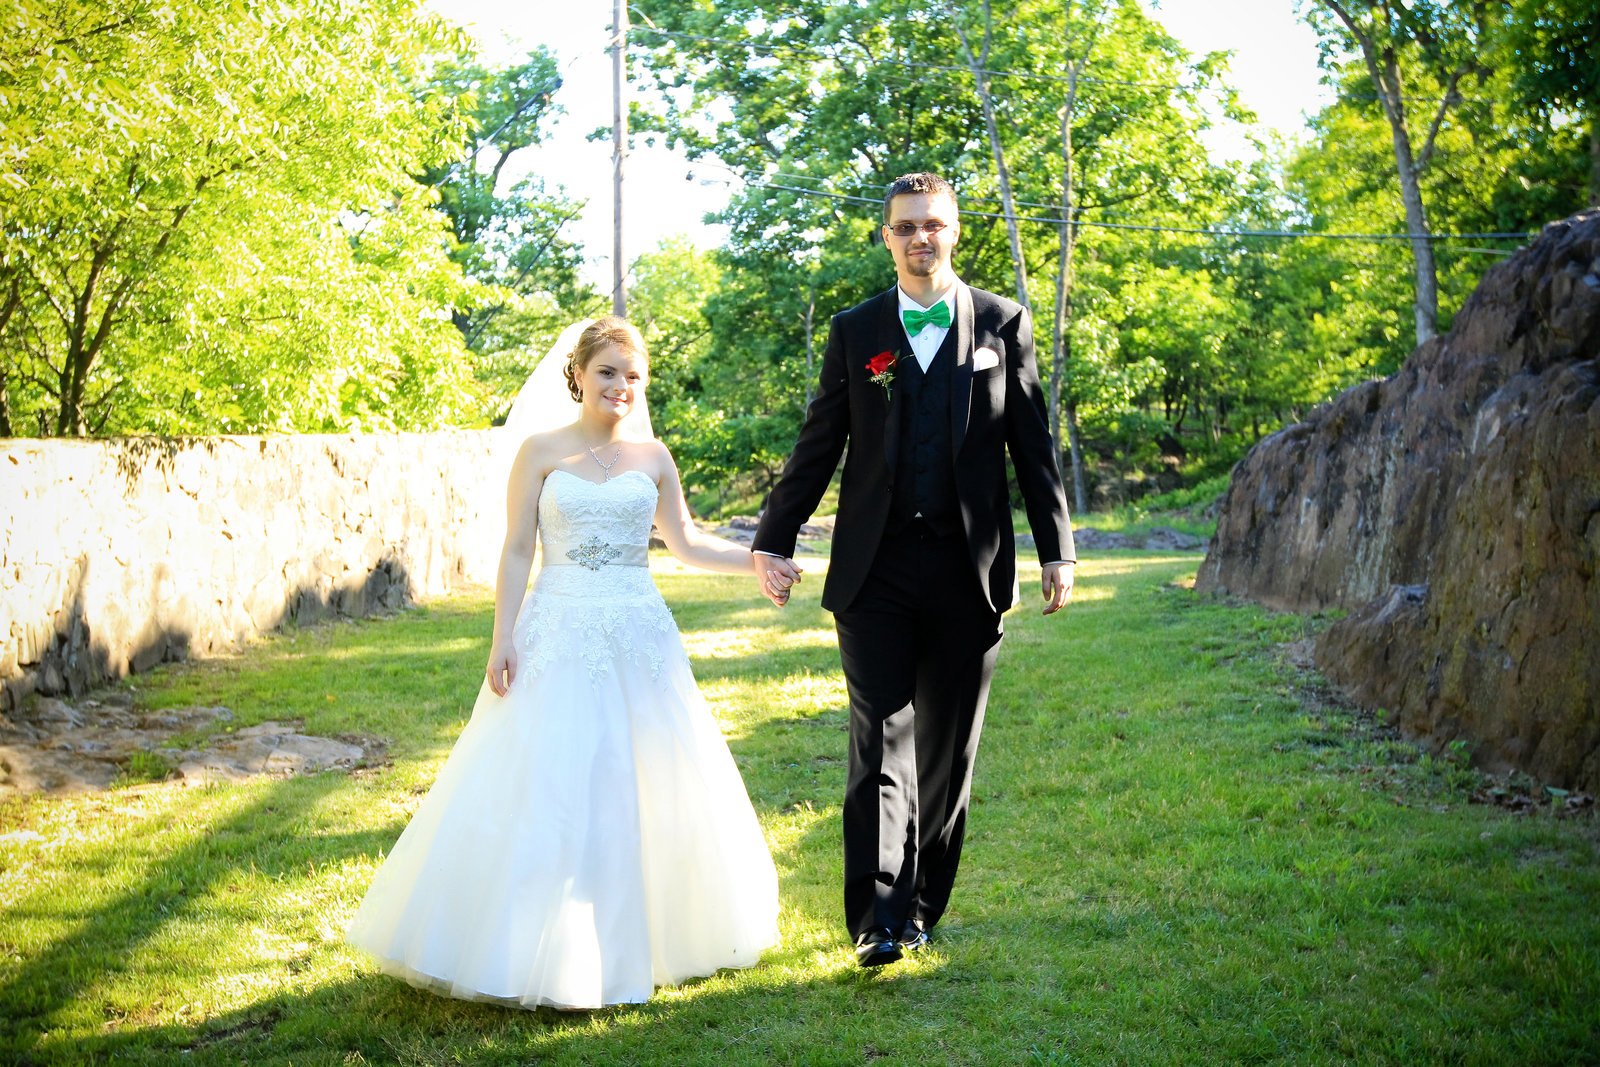 castle-wedding-photos-IMG_0380